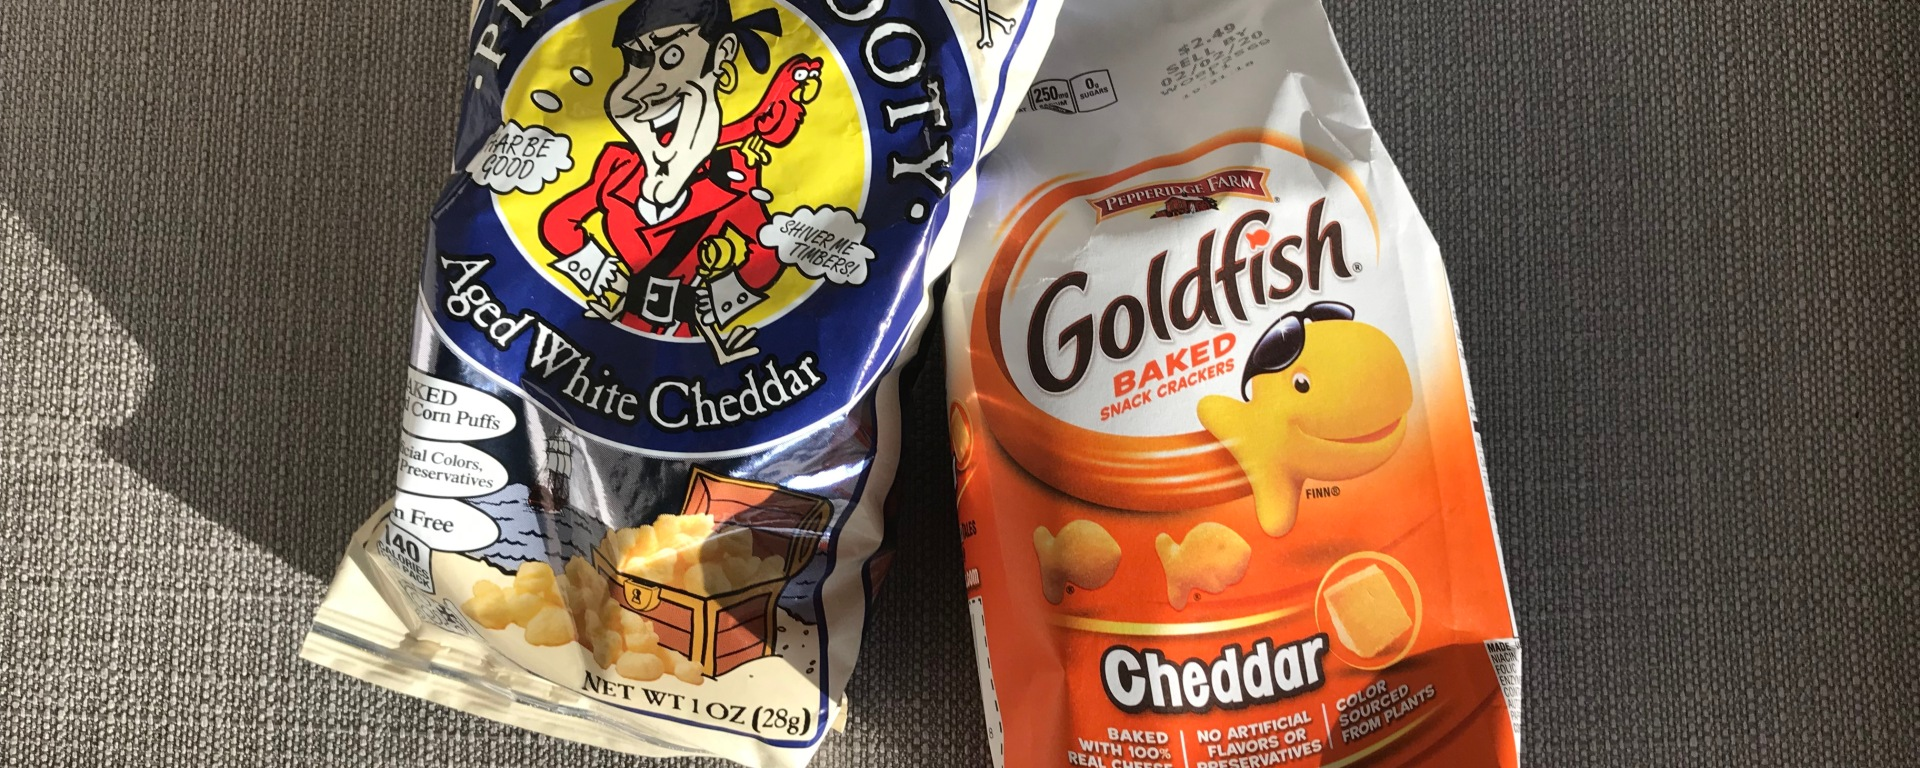 An image of a bag of Pirate's Booty and Goldfish on a couch